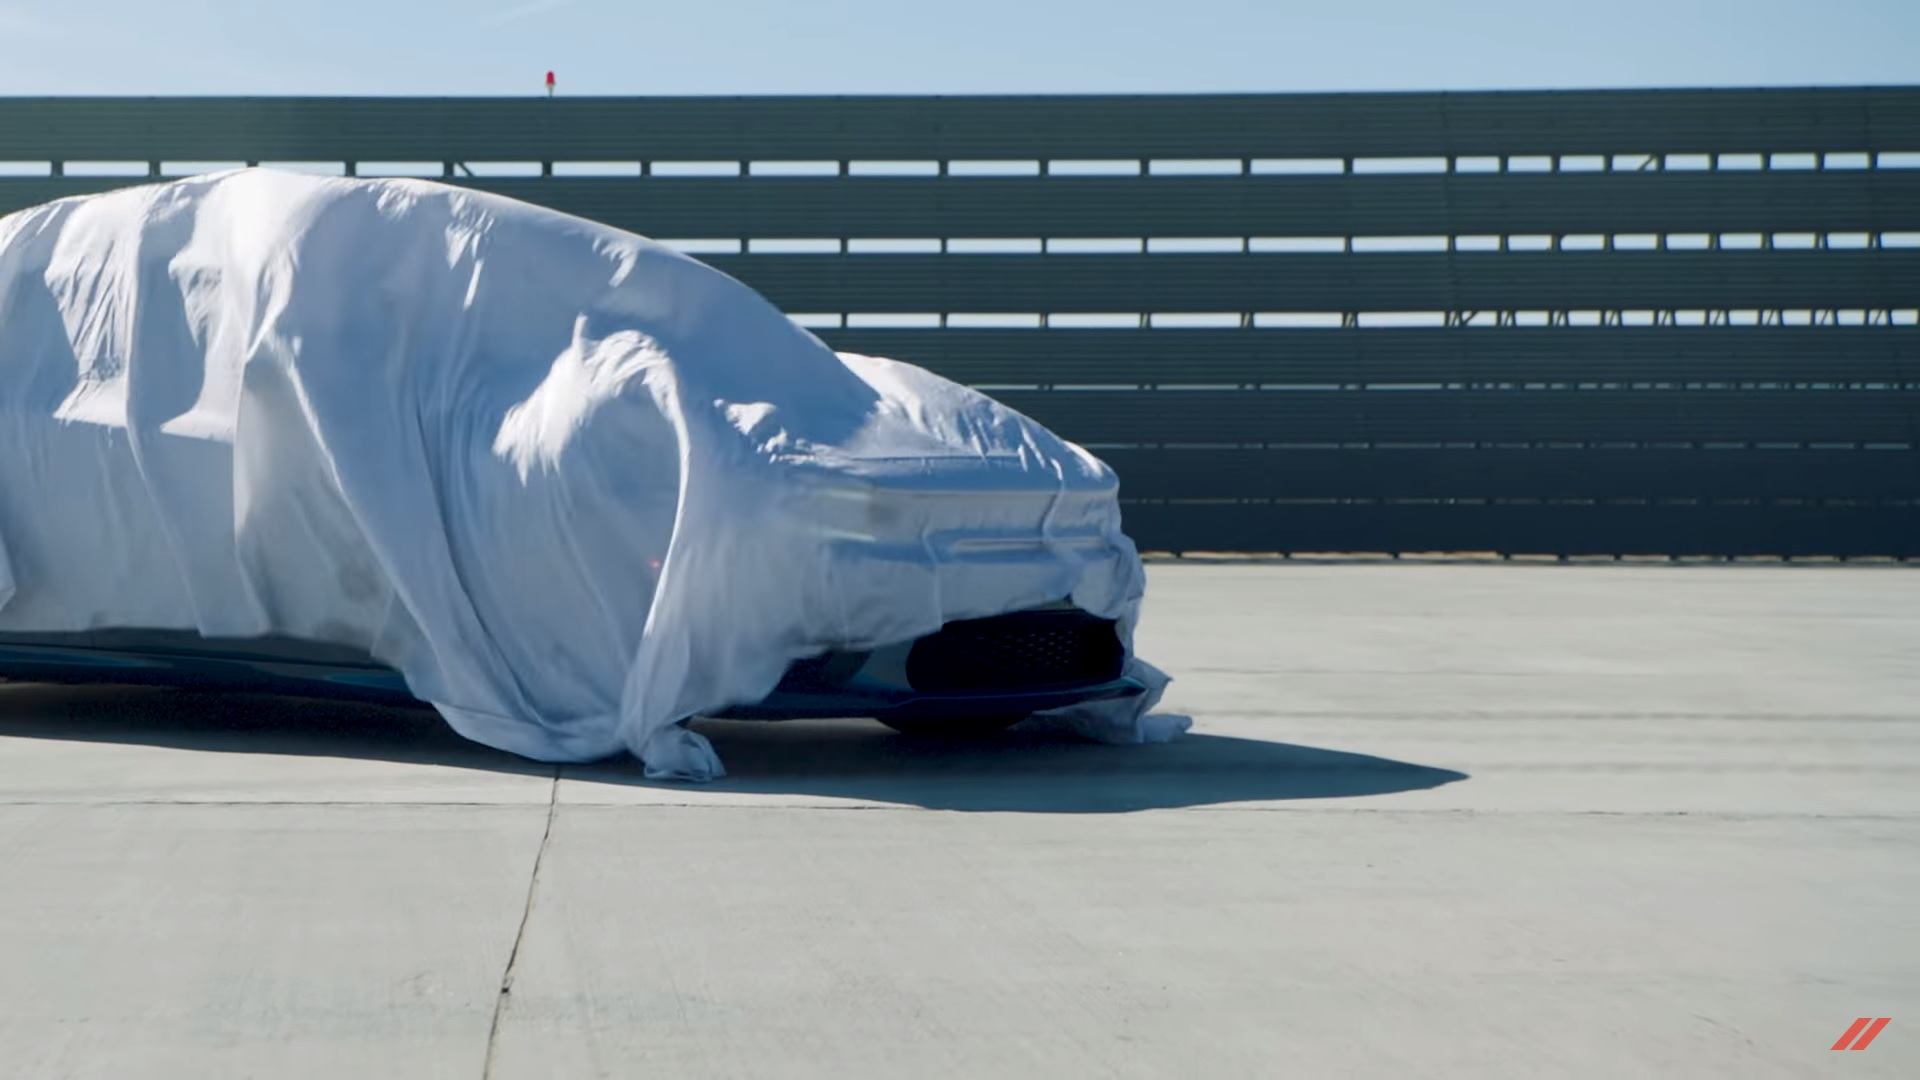 Dodge teases Charger SRT Hellcat Widebody, America's ultimate muscle sedan thumbnail